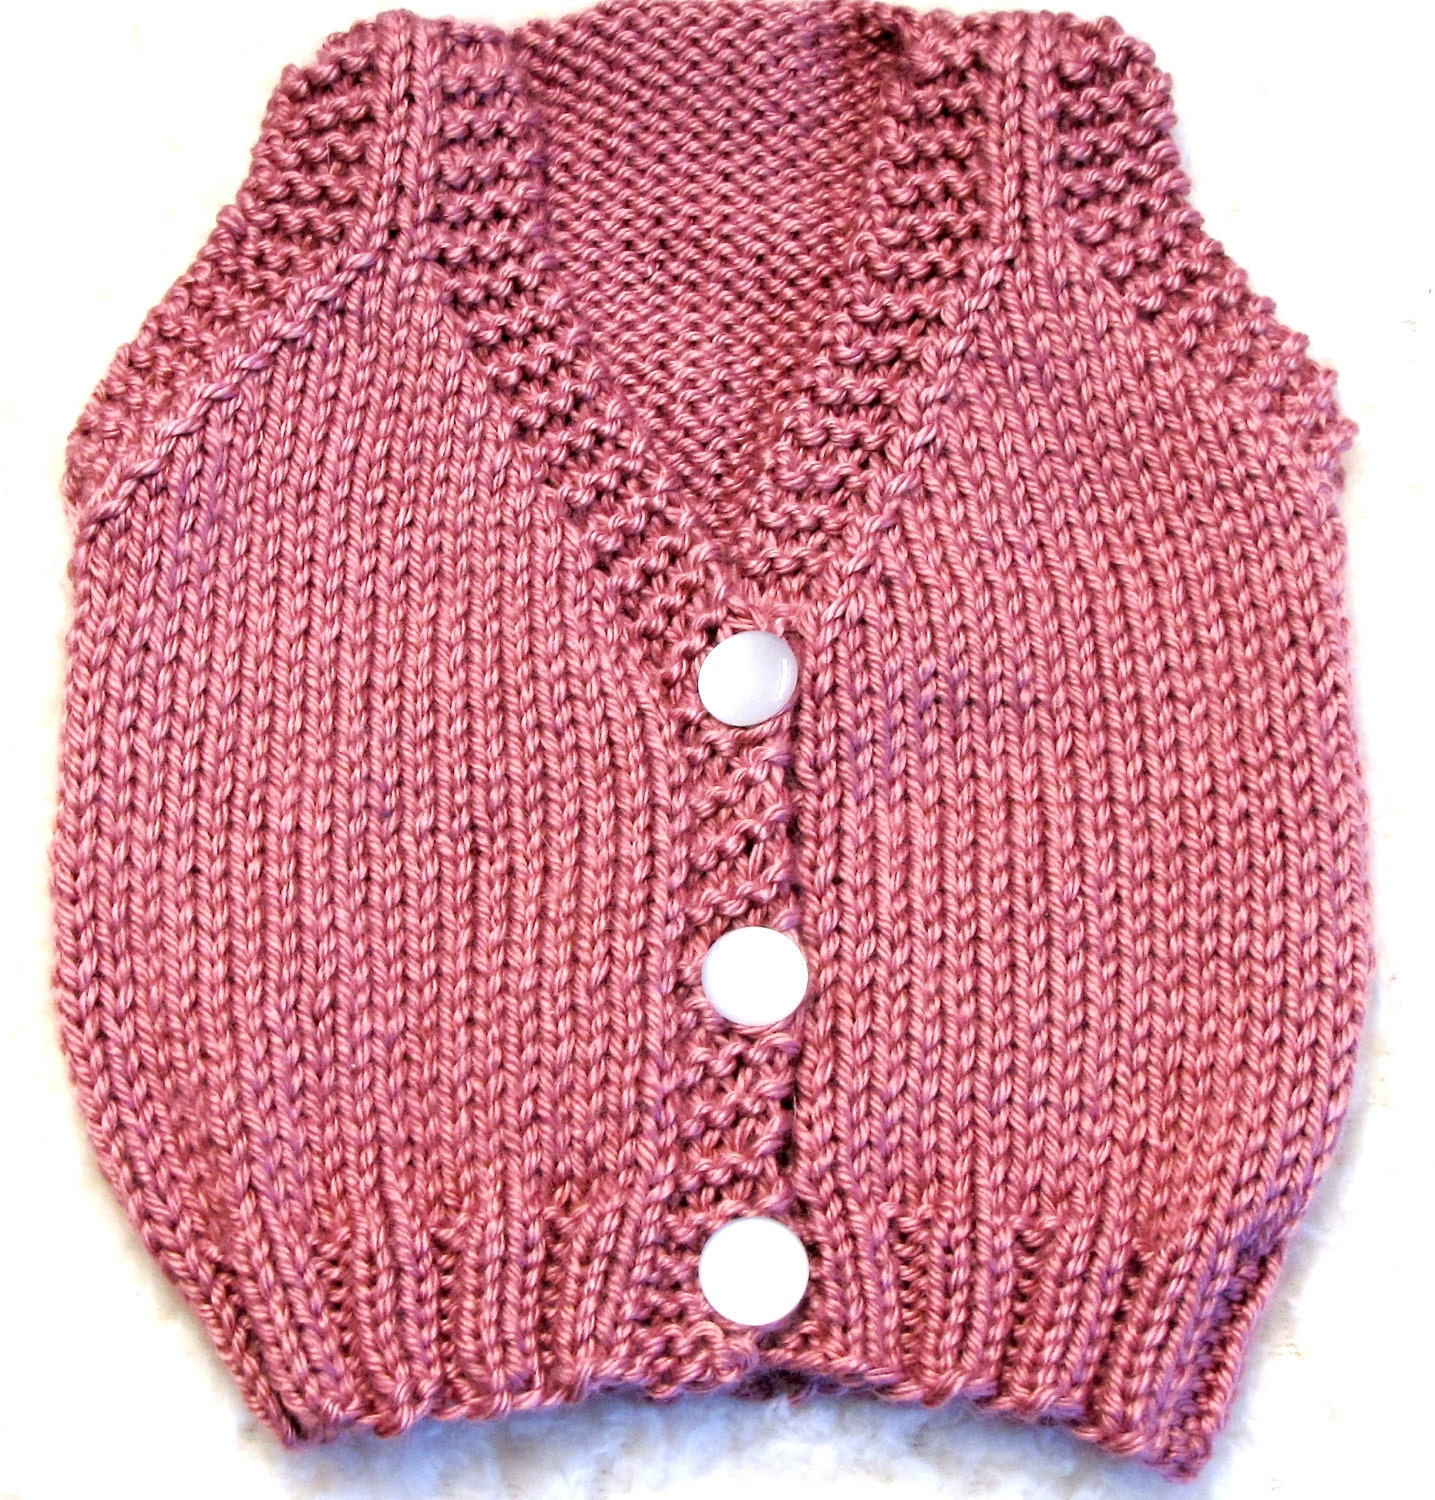 Knitting Patterns For Baby Vests : Baby Vest Knitting Pattern SMALL PDF